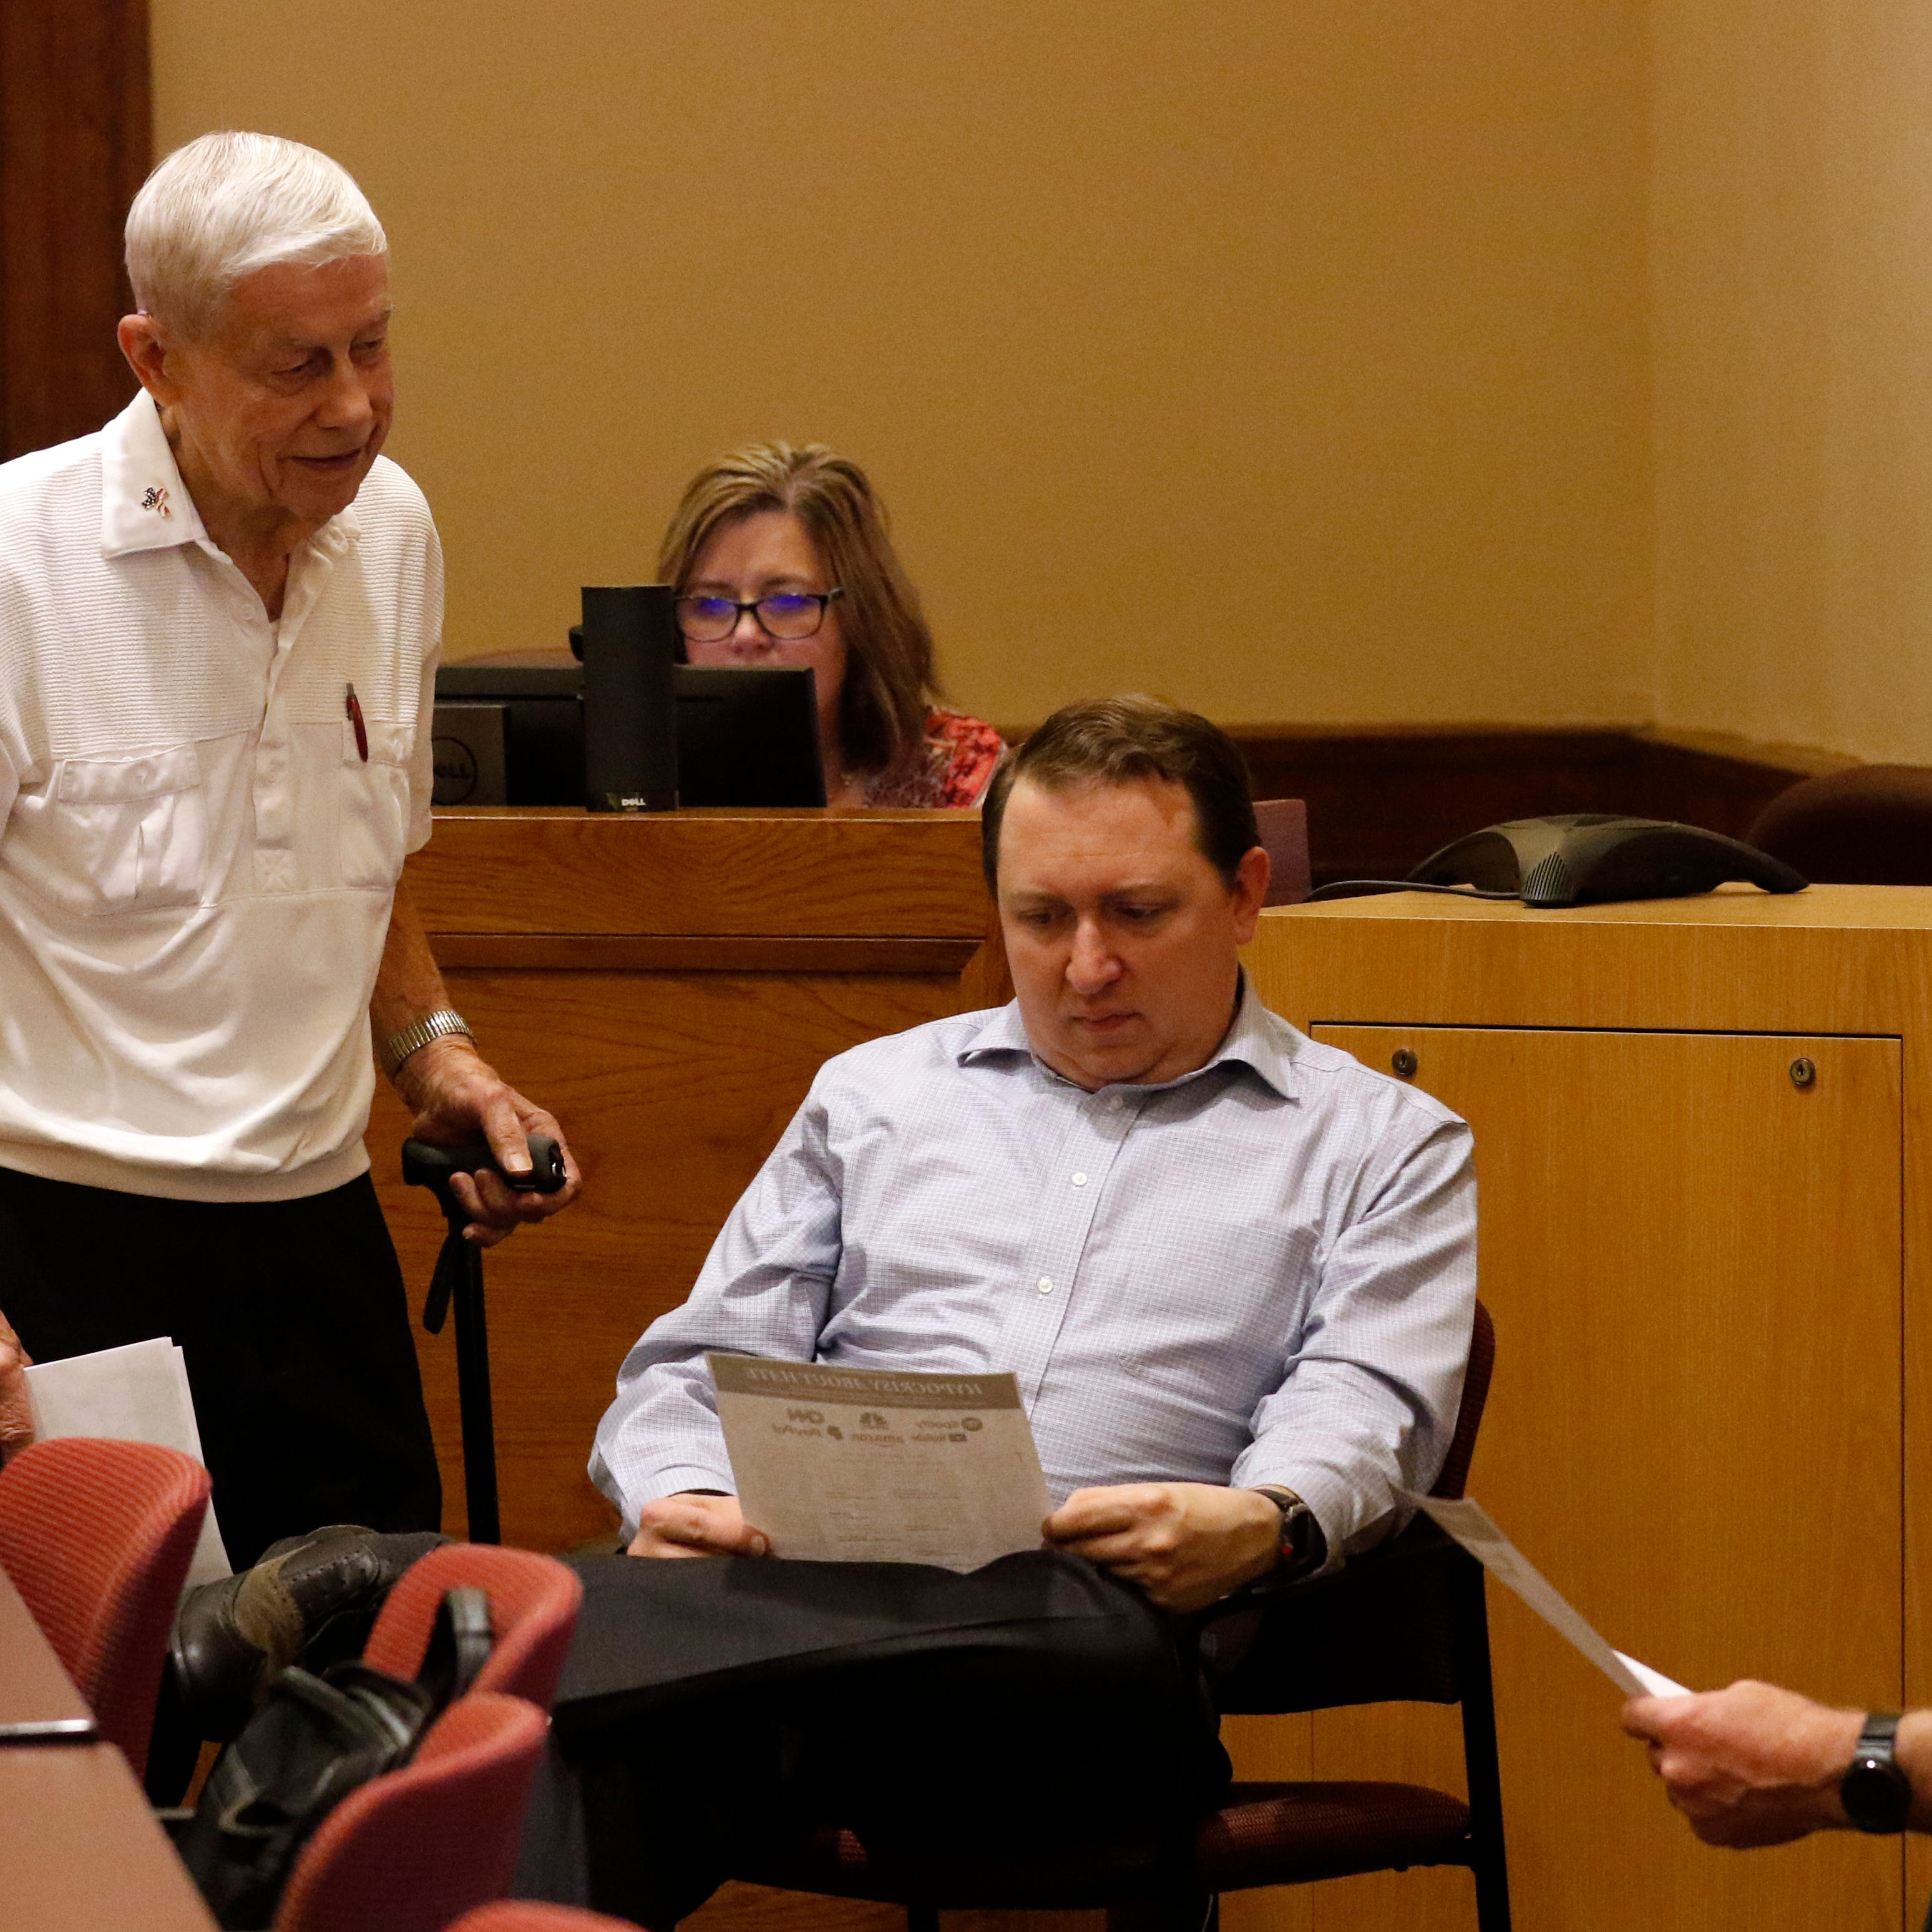 Bremen area man, 85, is a fixture at county commission meetings